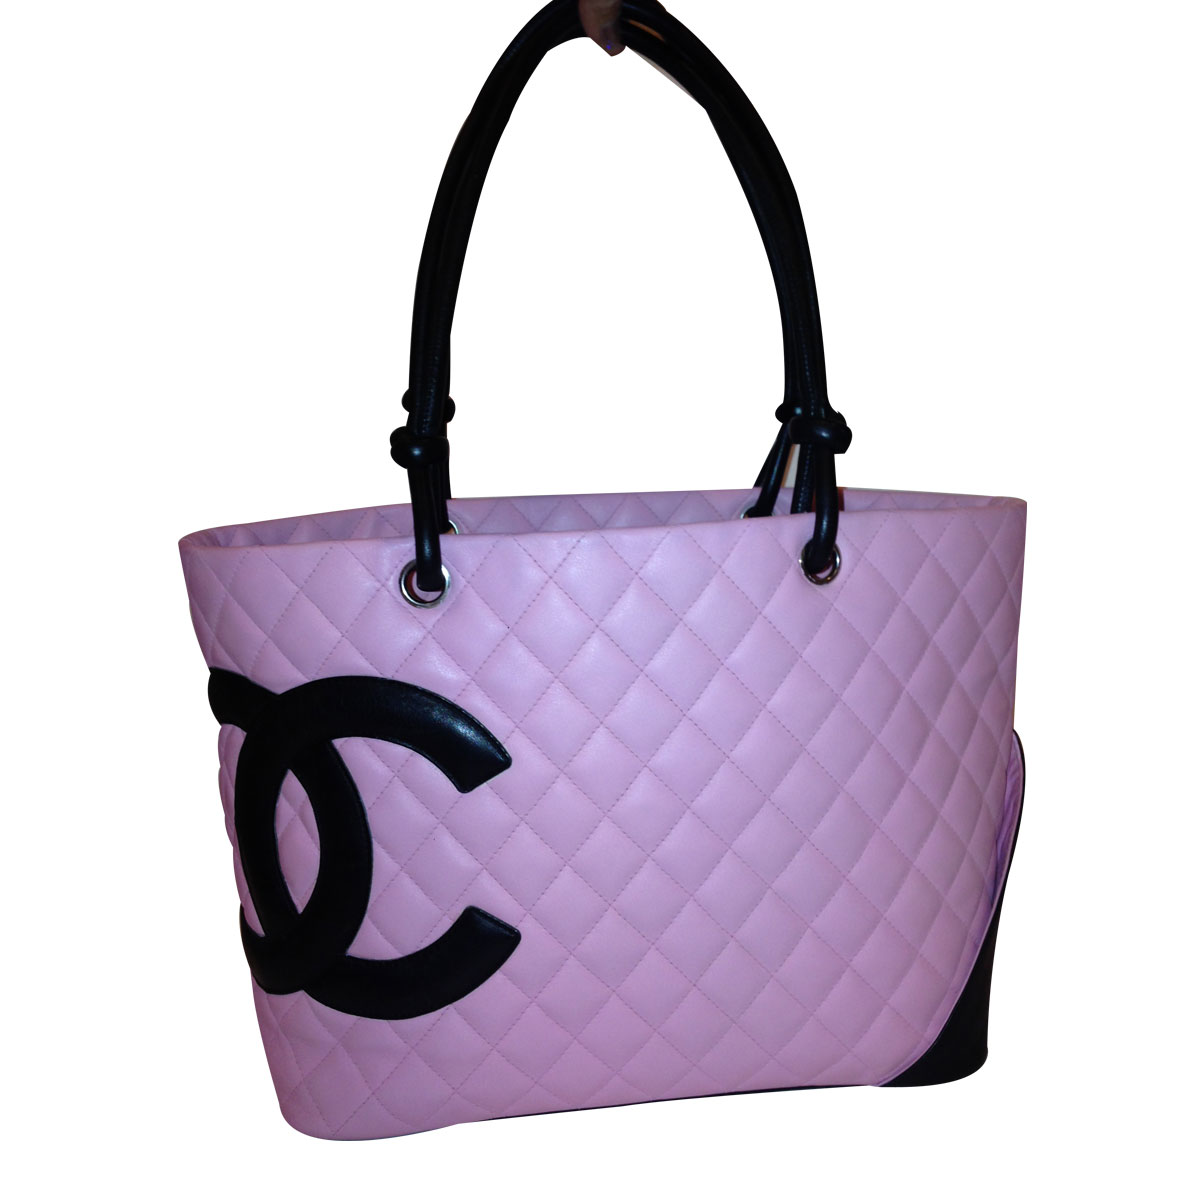 fbec9cb1e1a9 Over  1000 - Authentic Chanel Pink Cambon Large Leather Tote Bag